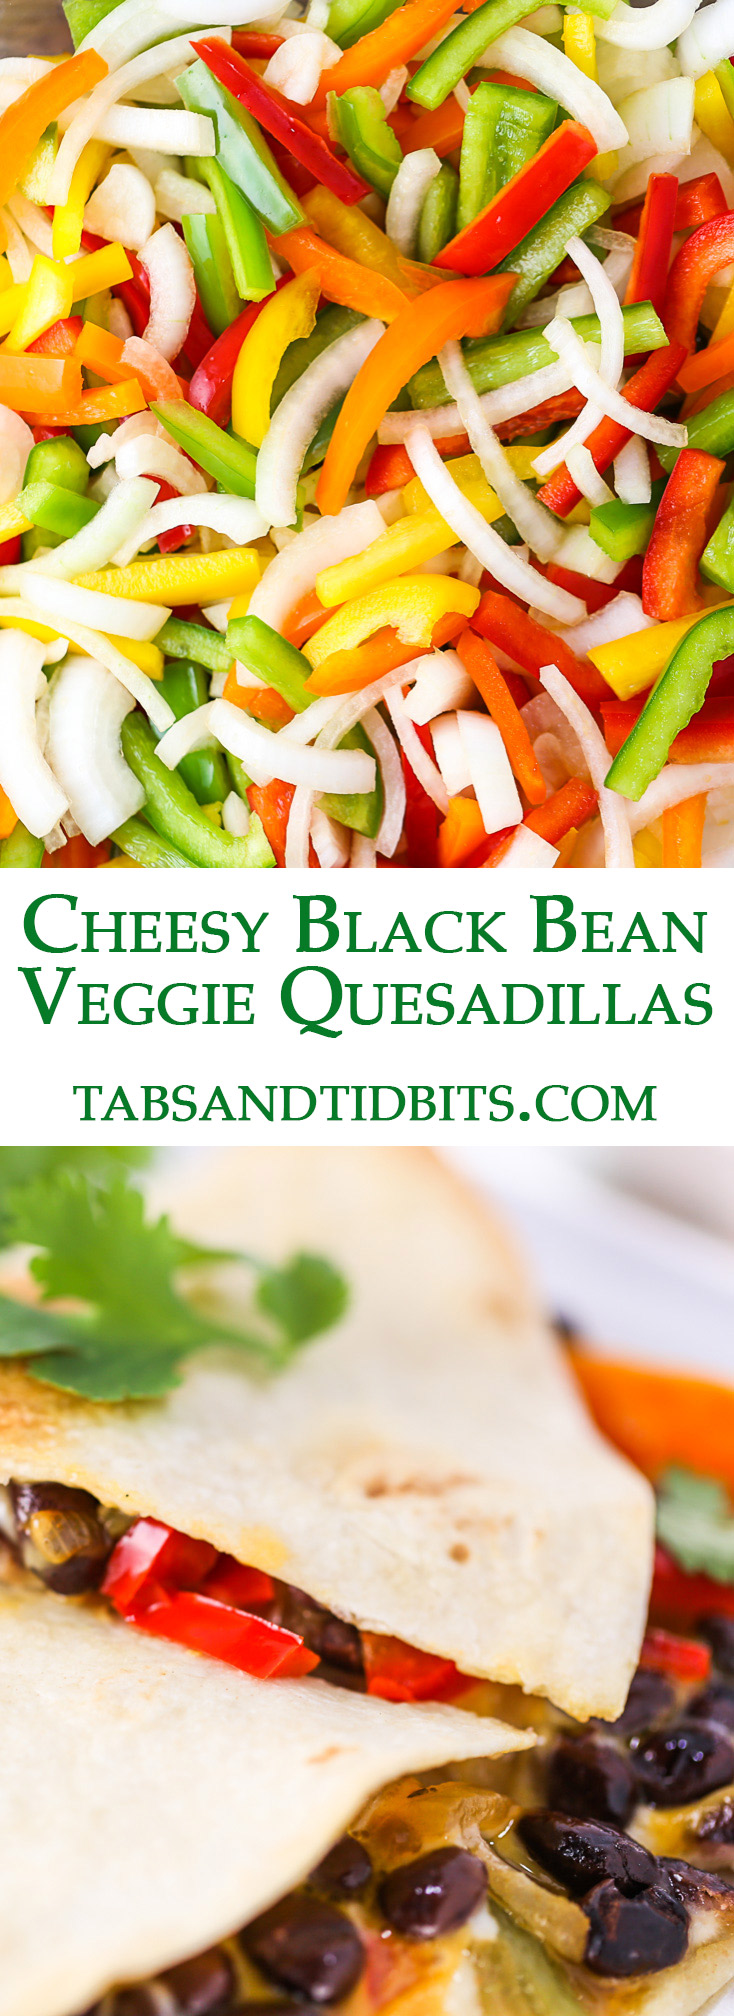 Sauteed chopped peppers and onions with black beans are layered with two cheeses folded in a flour tortilla and baked in the oven!